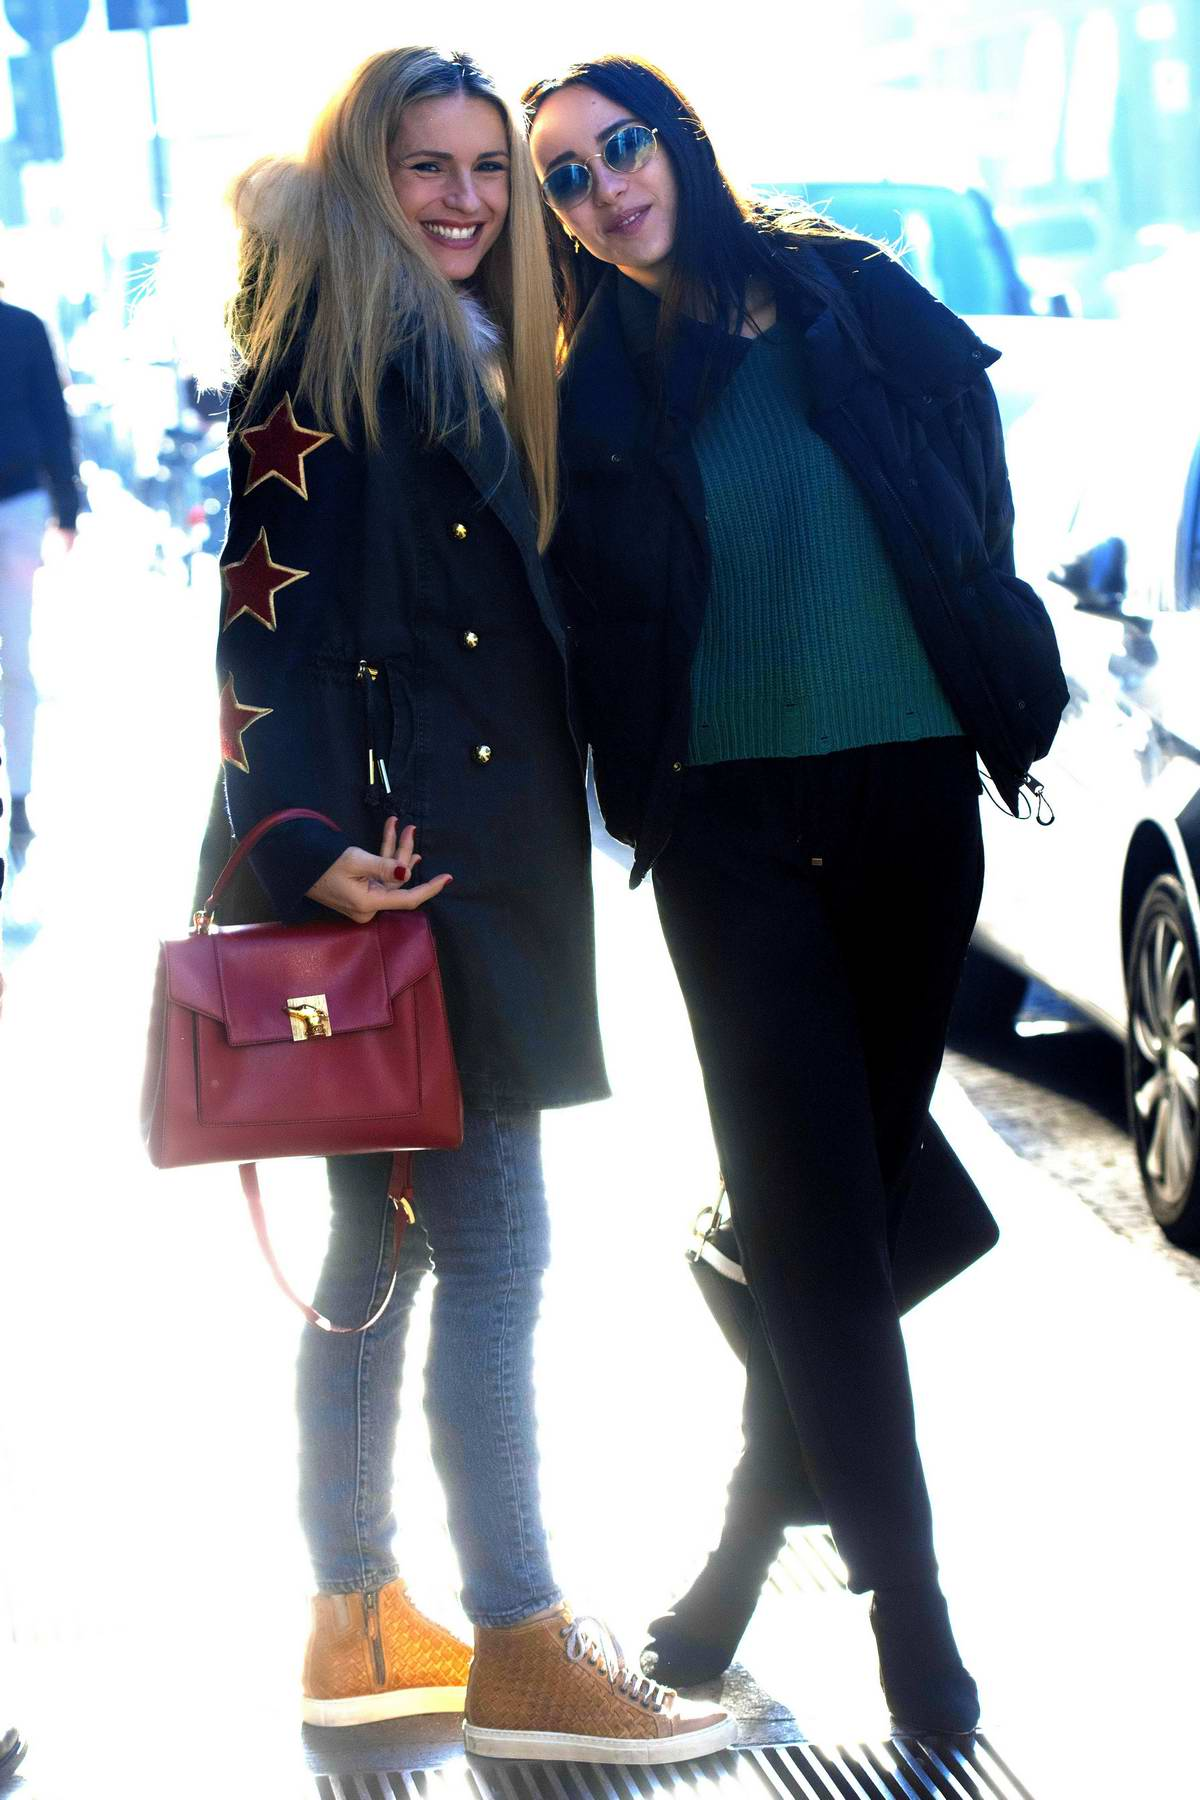 Michelle Hunziker and daughter Aurora Ramazzotti is all smiles while out in Milan, Italy